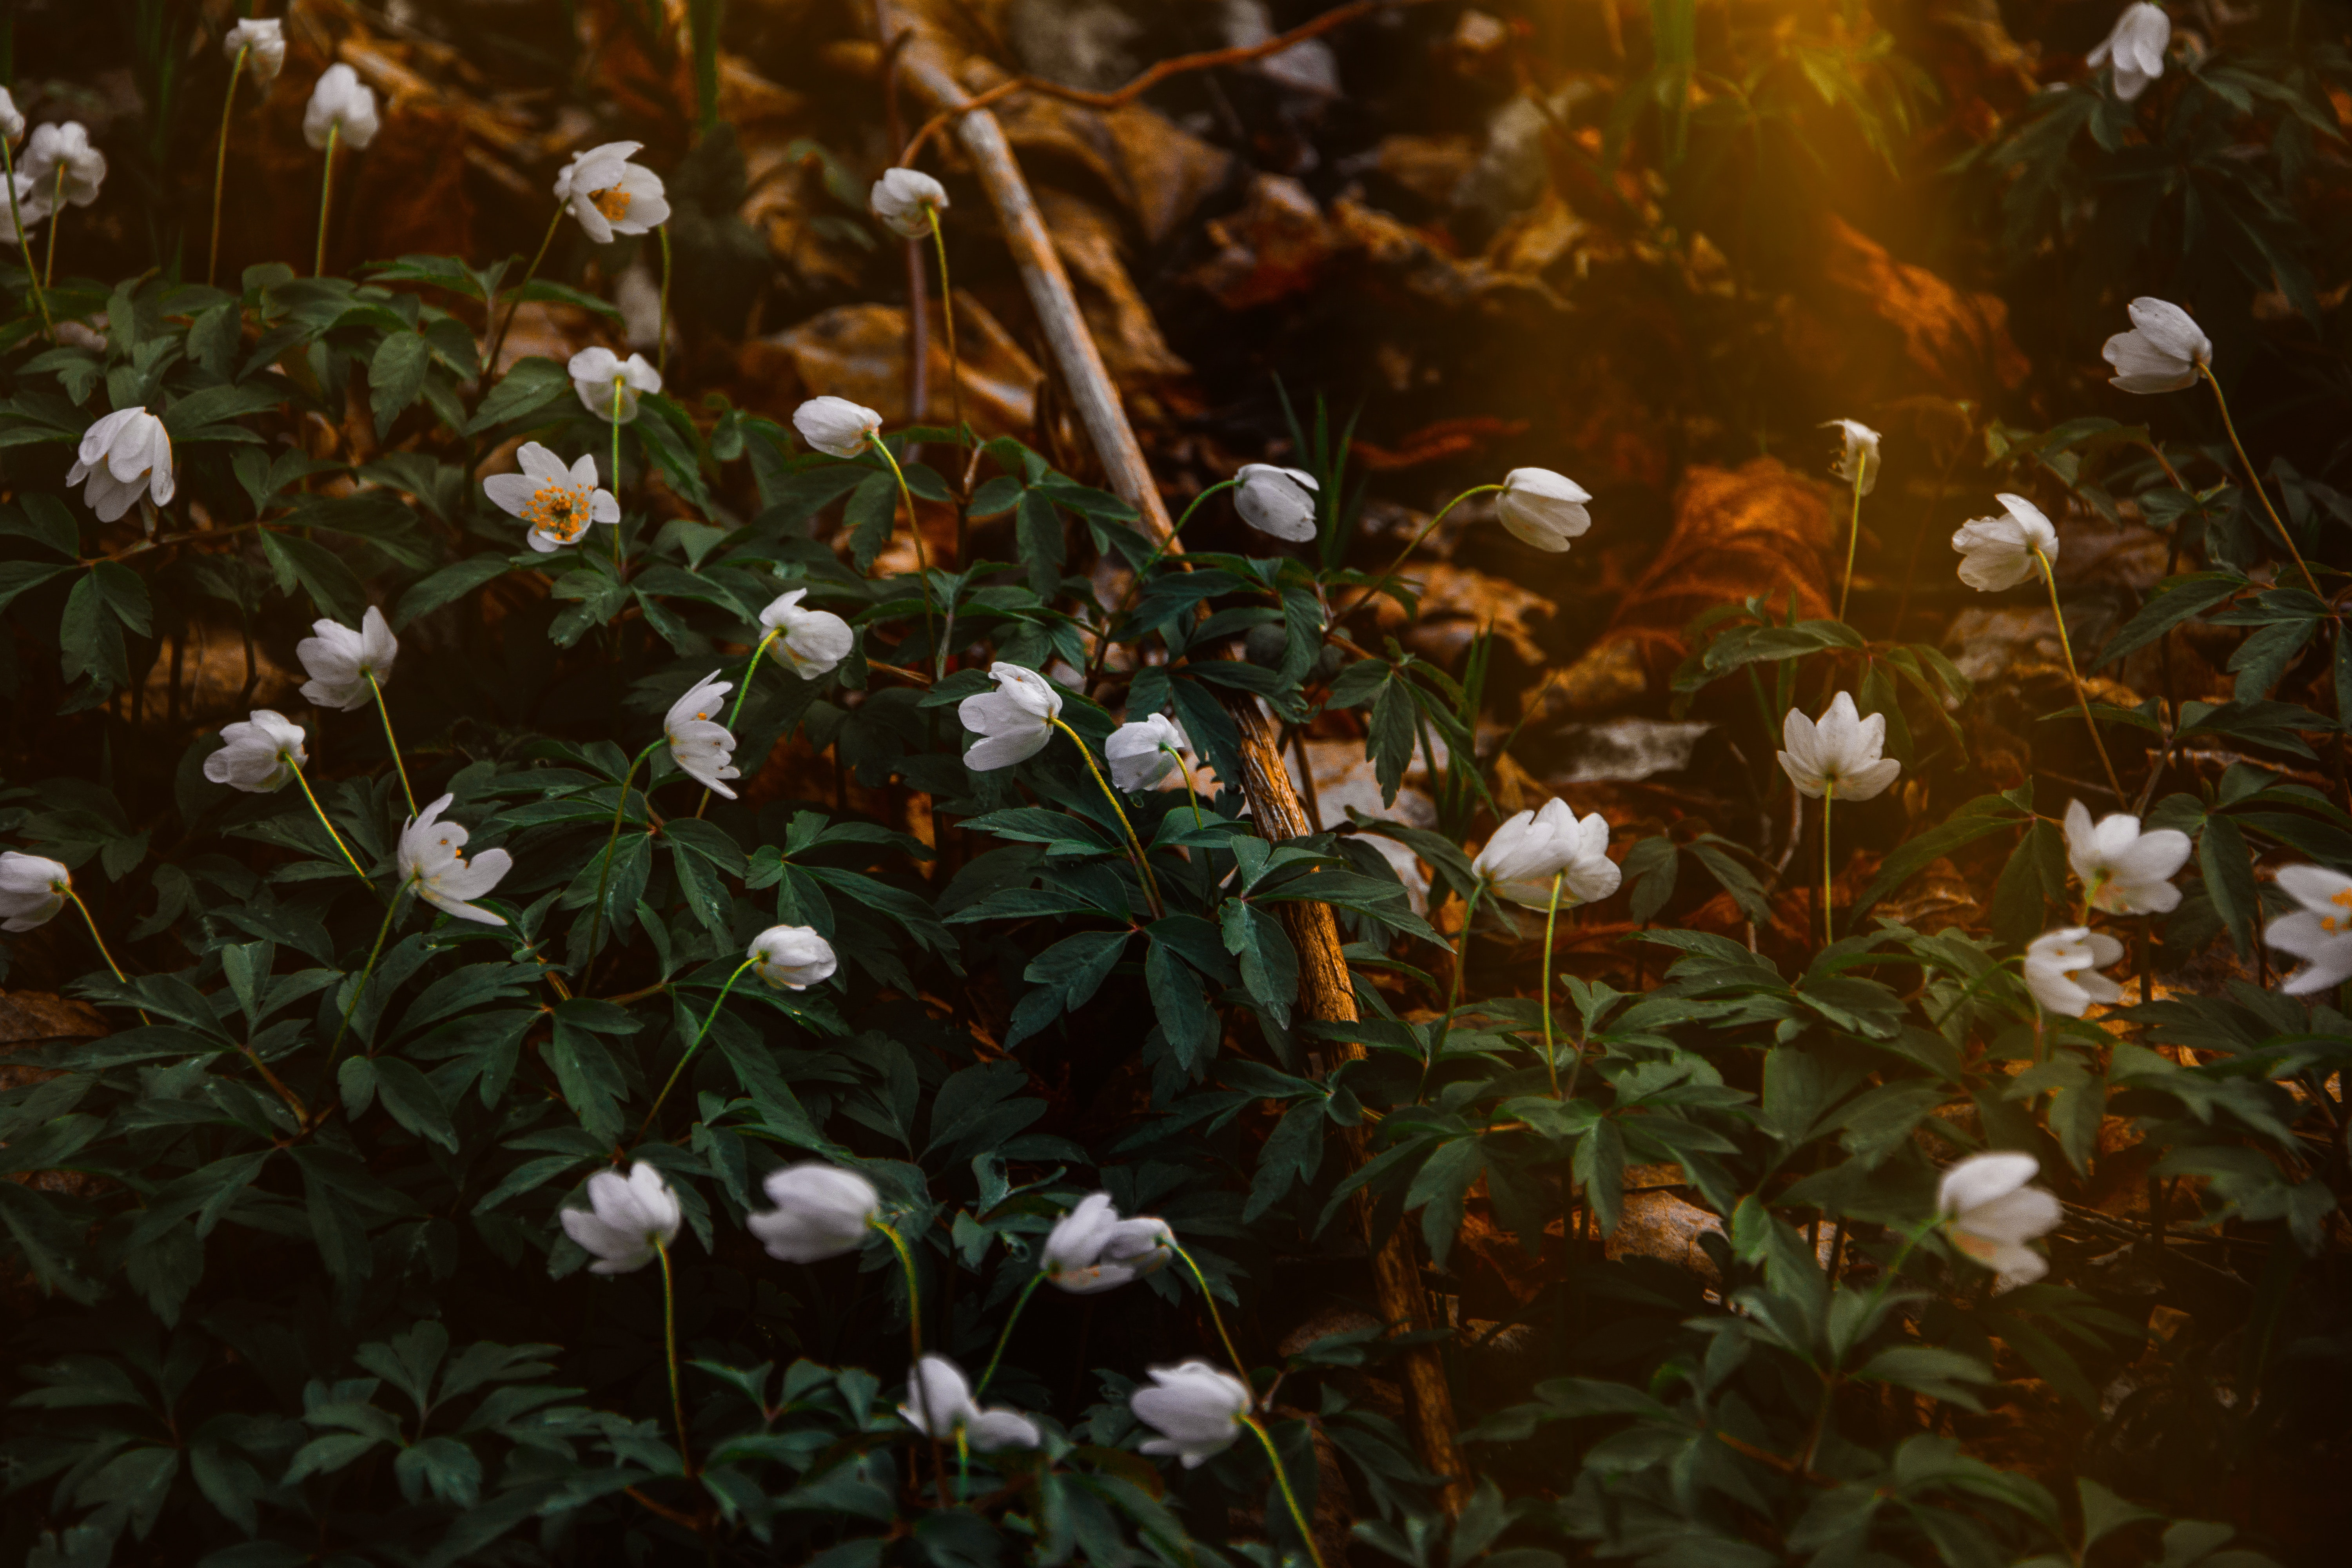 Free photo: Photo of White Flowers - Park, Outdoors, Petals - Free ...